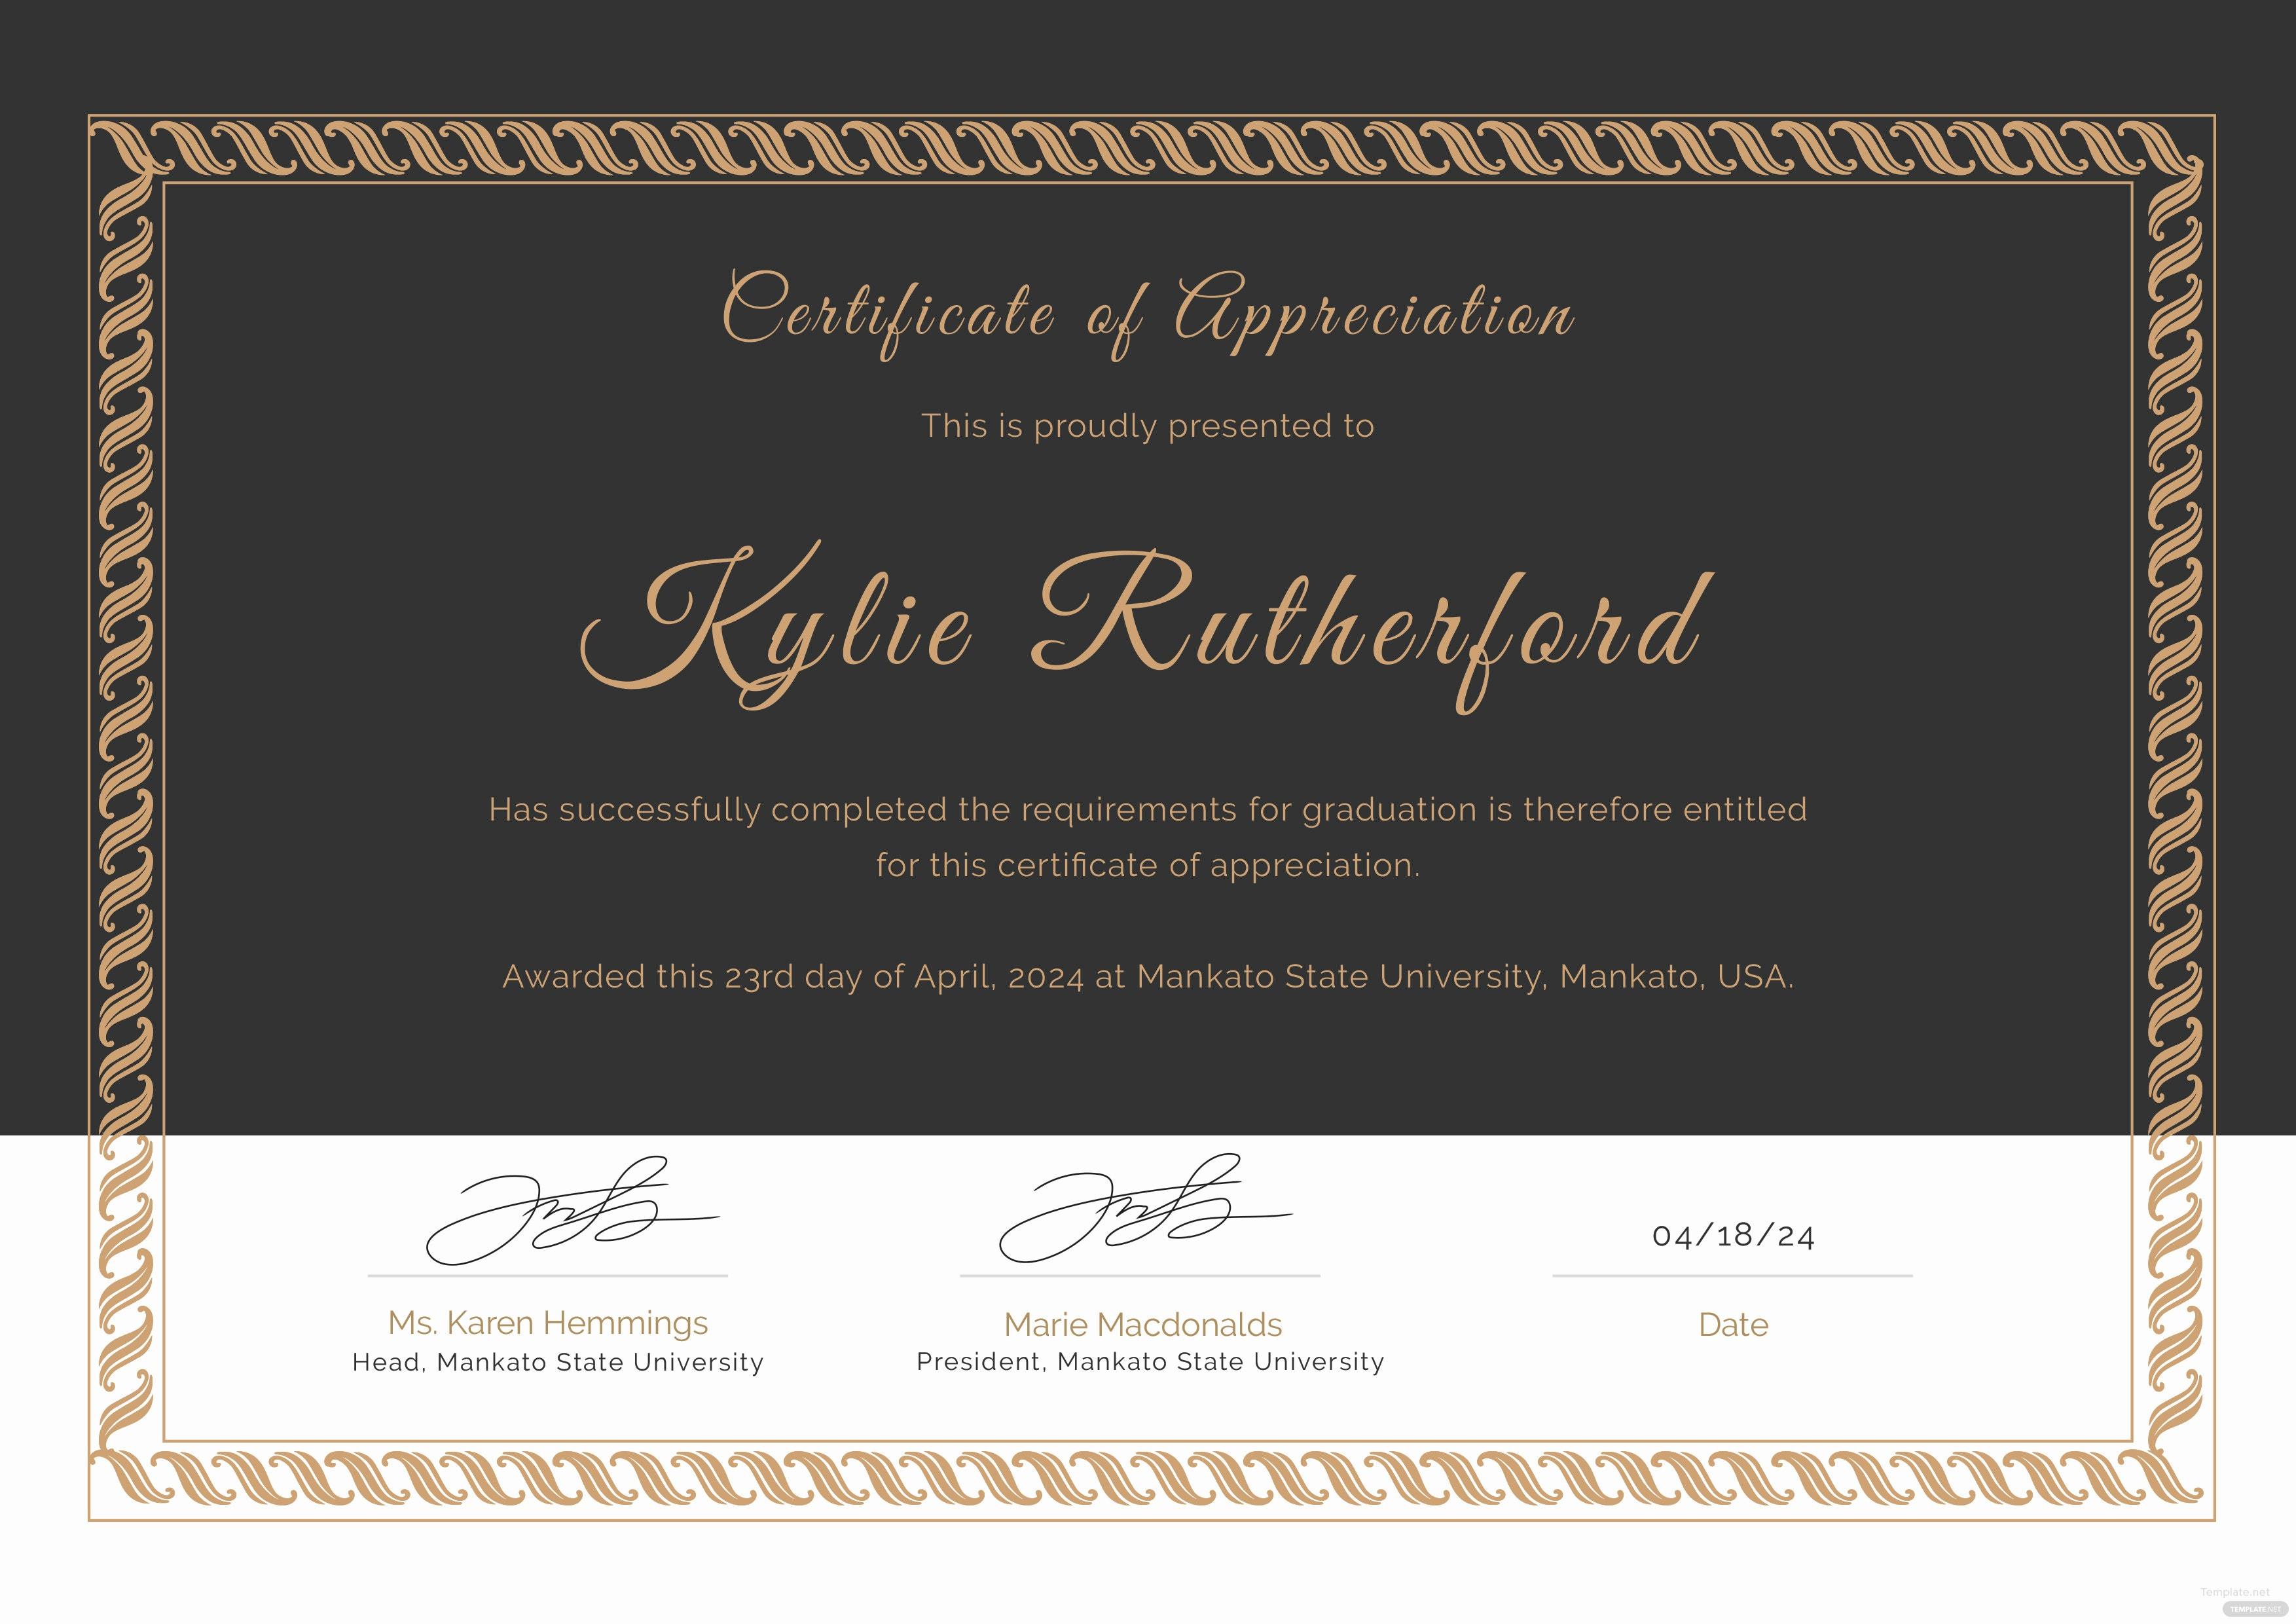 Free graduation appreciation certificate template in adobe photoshop click to see full template editable graduation appreciation certificate yadclub Images